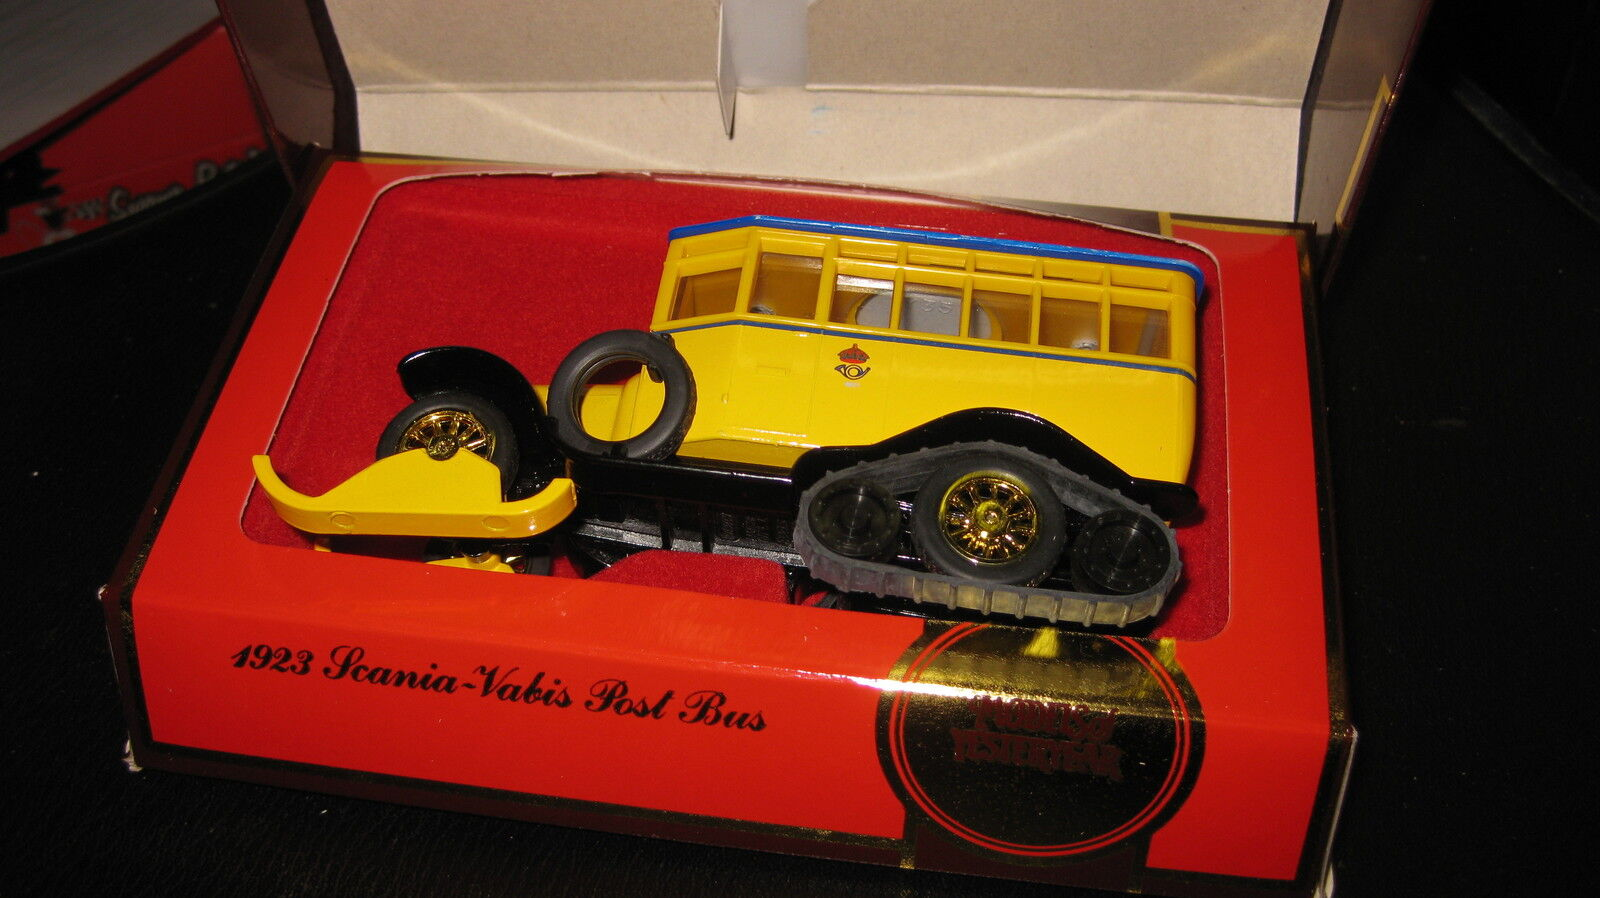 MATCHBOX YESTERYEAR Y-16 SCANIA VABIS POST BUS BUS BUS AWESOME LOOKING MODEL 0d1dfb